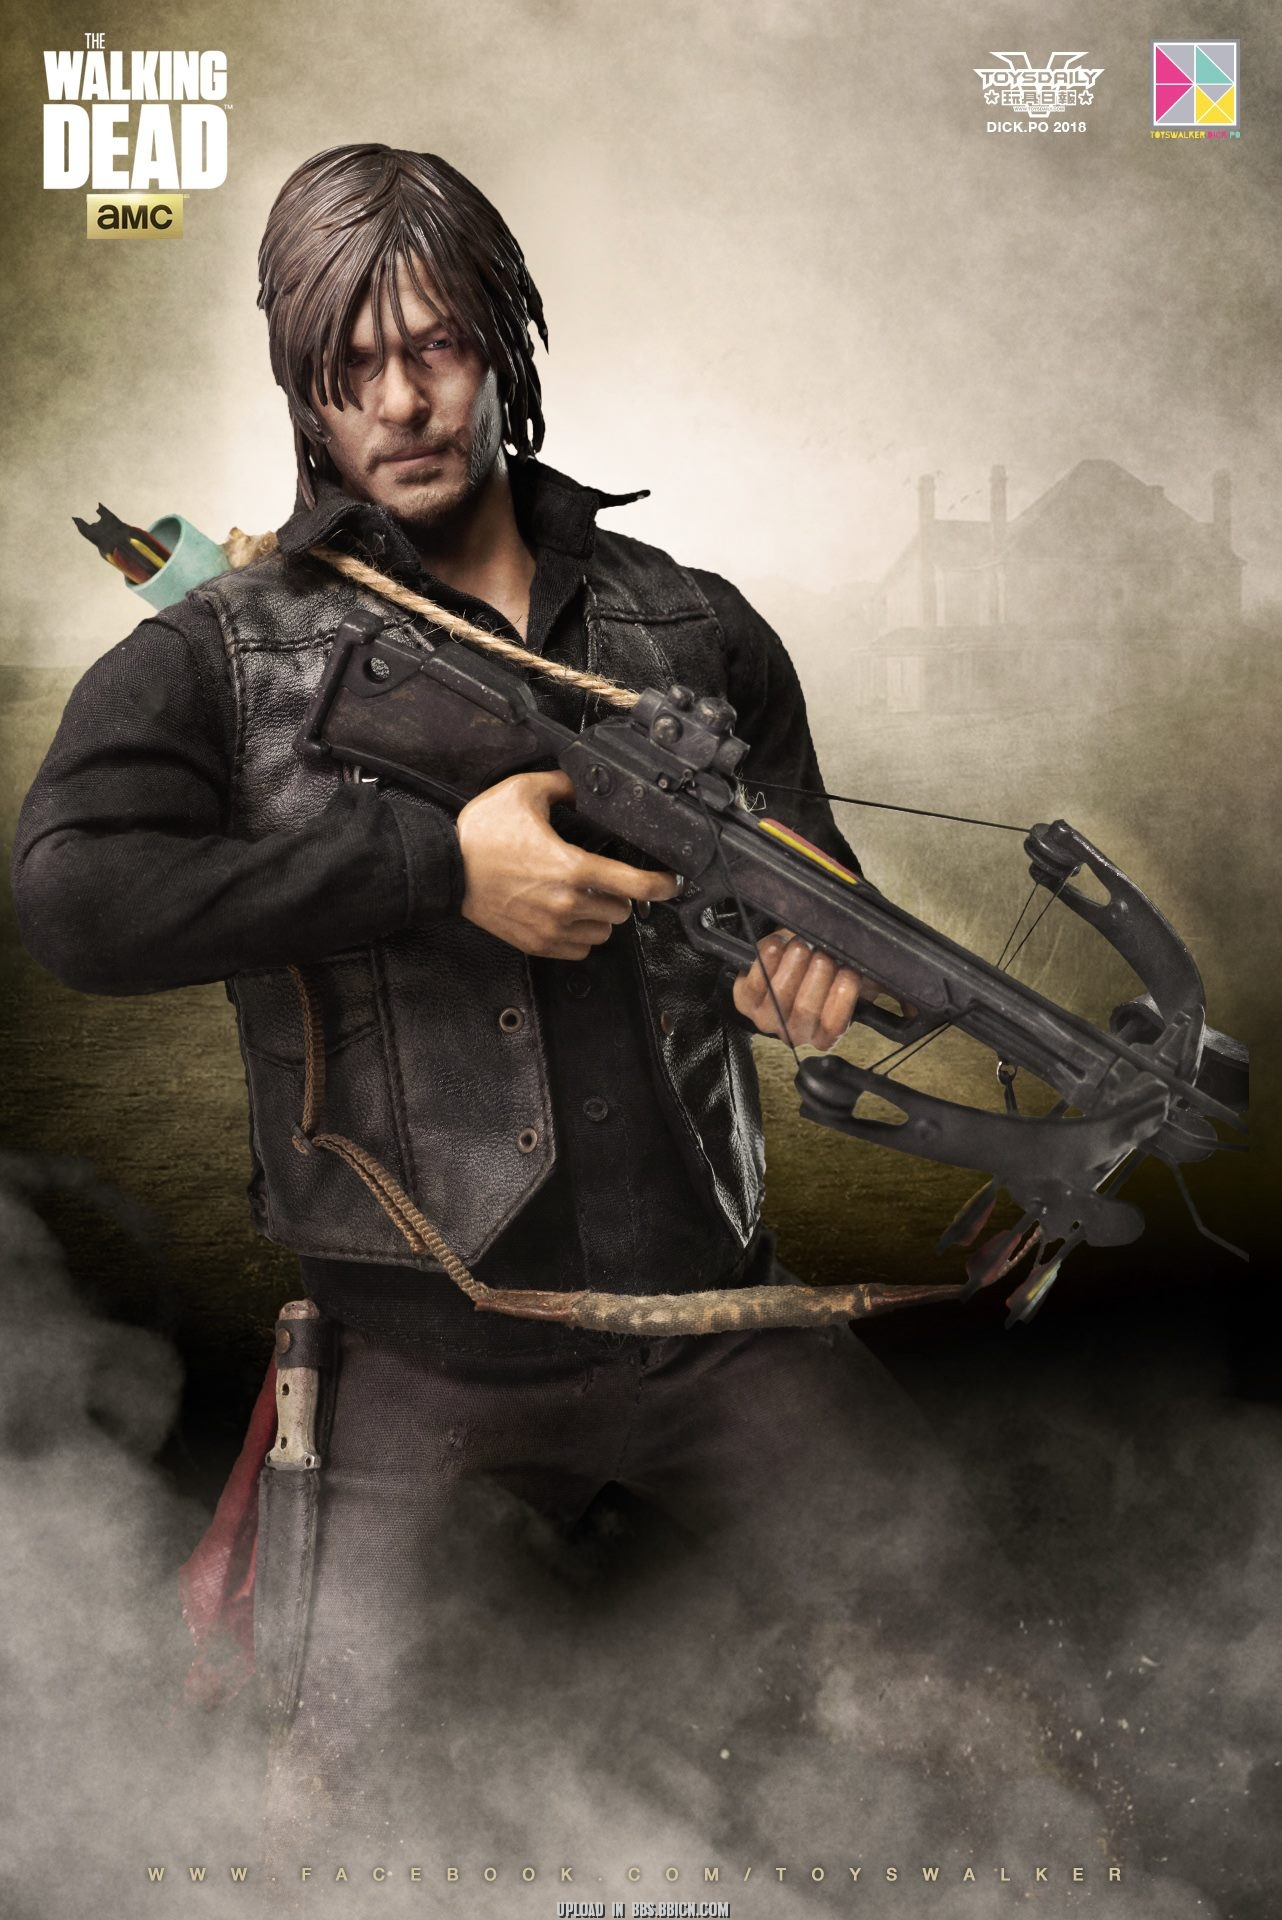 The Walking Dead Daryl Dixon3.jpg